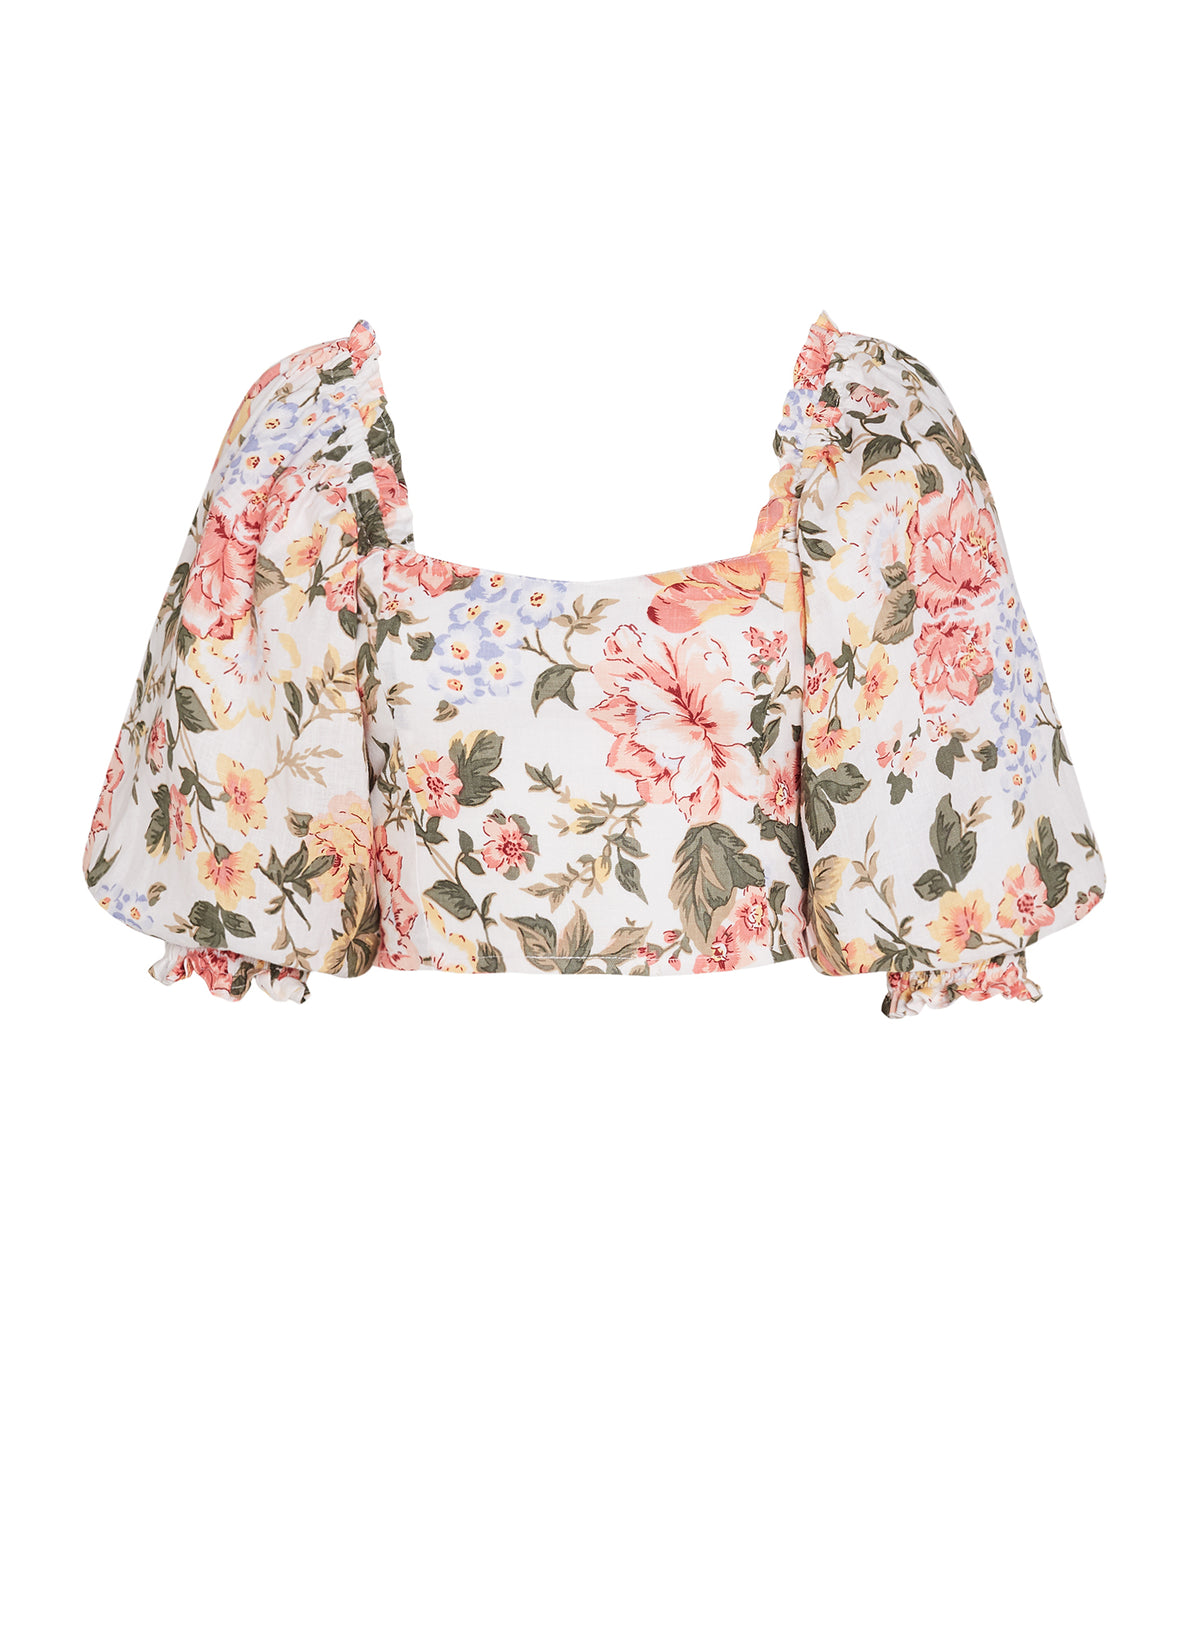 Faithfull The Brand - Pietra Top Teatro | Floral Print